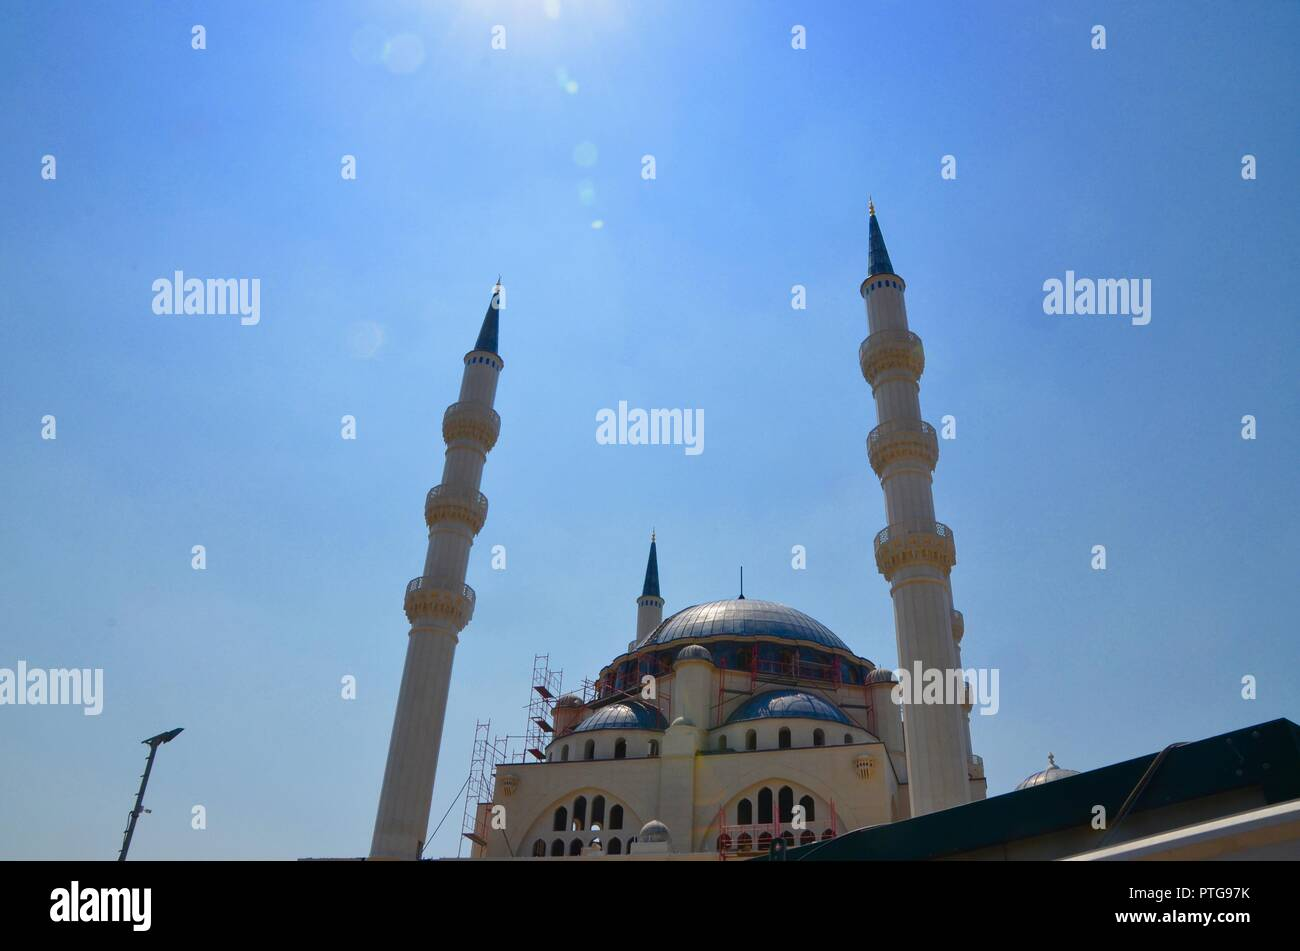 the Great Mosque of Tirana albania - Stock Image